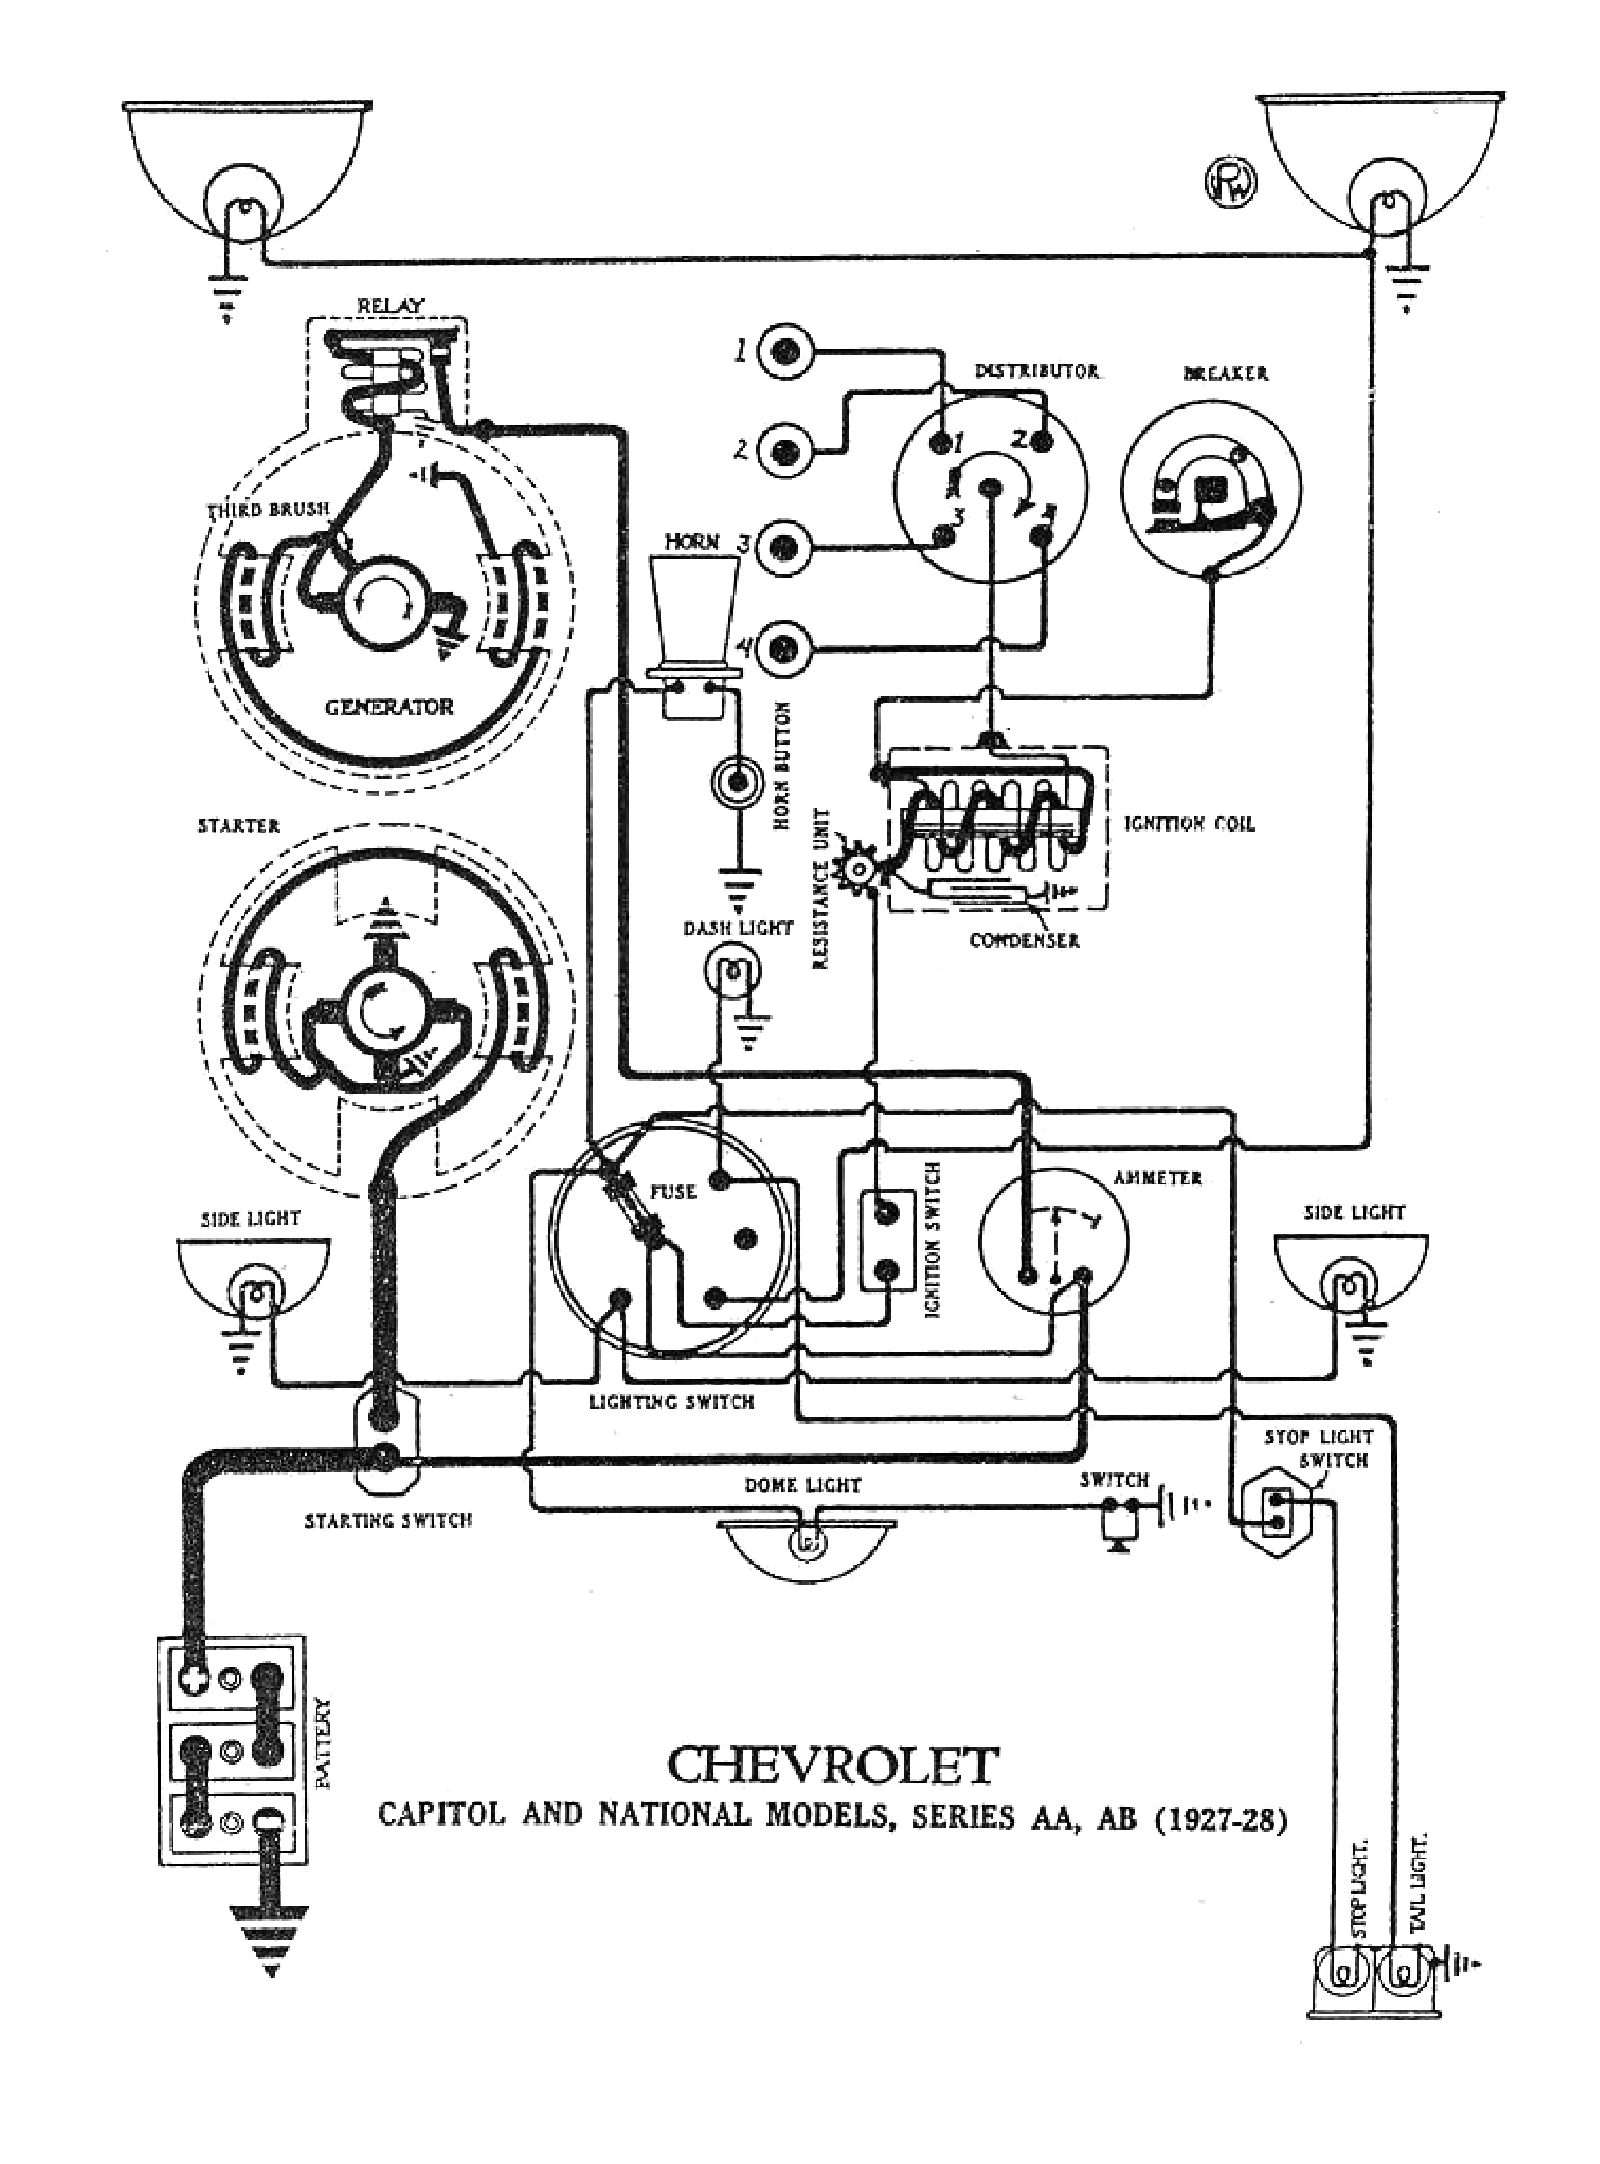 1930 ford wiring diagram wiring diagramsignition circuit diagram for the 1940 47 buick all models wiring1930 [ 1600 x 2164 Pixel ]